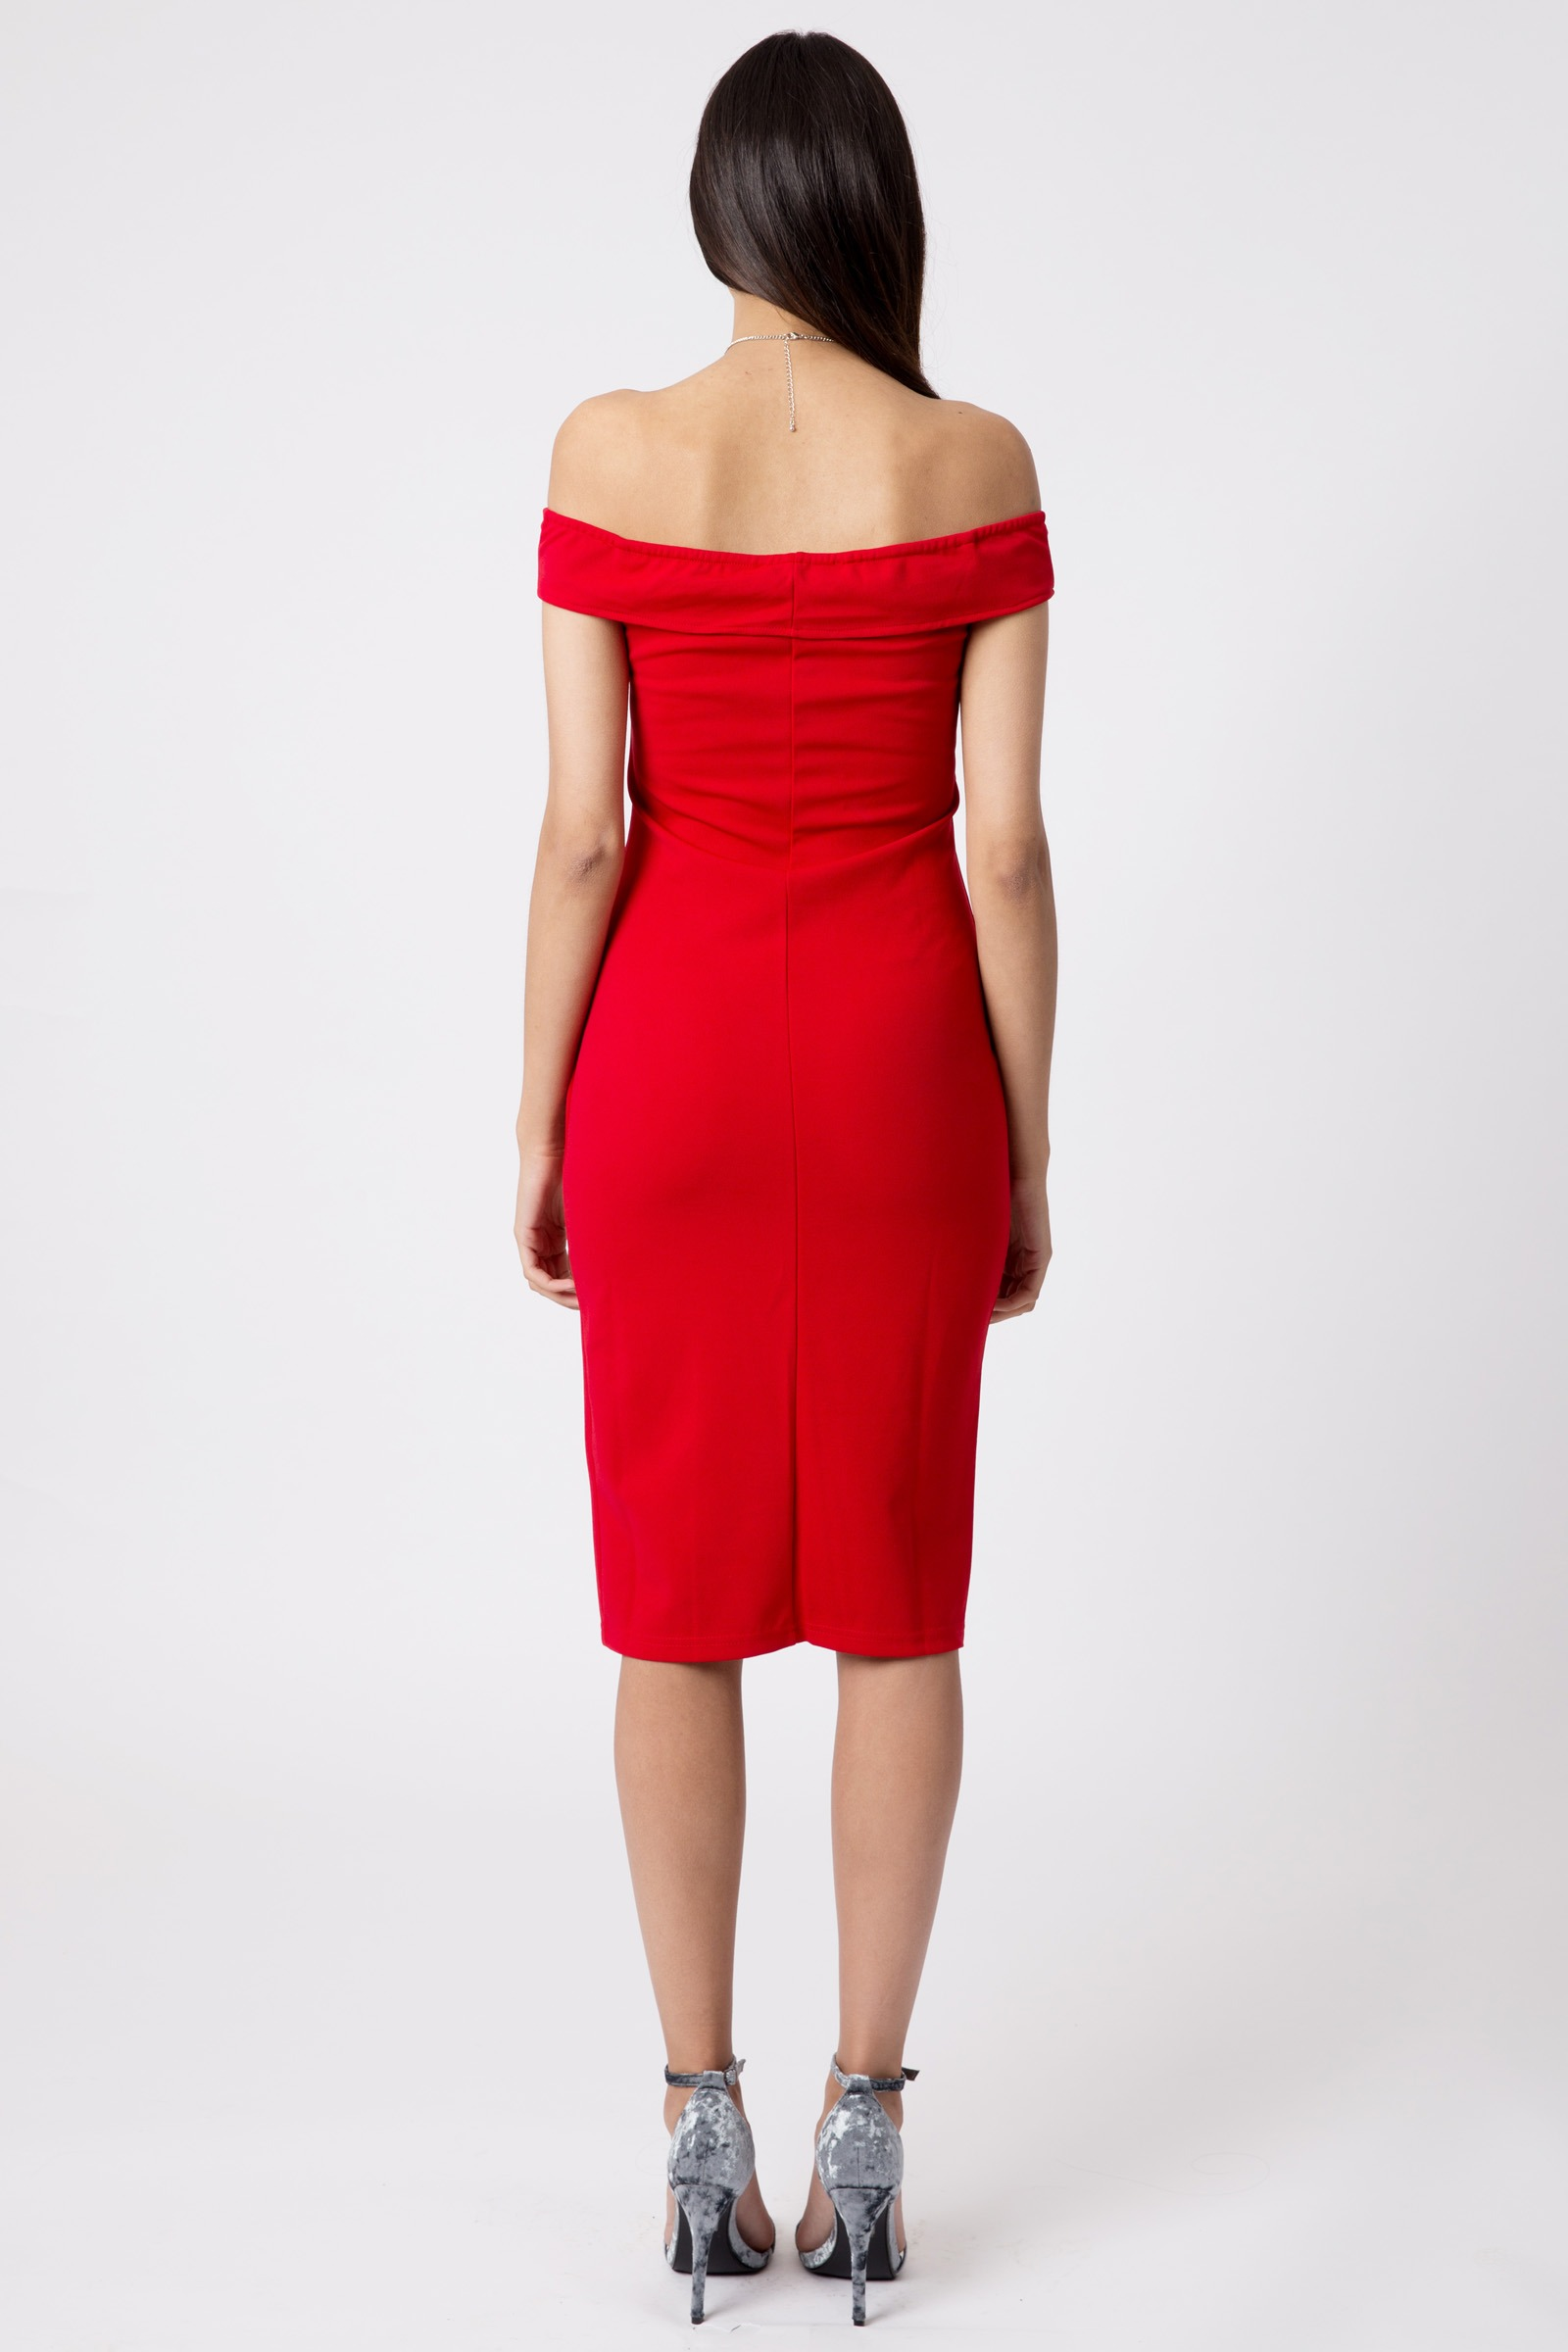 Red Off Shoulder Thigh Split Bodycon Dress Dresses